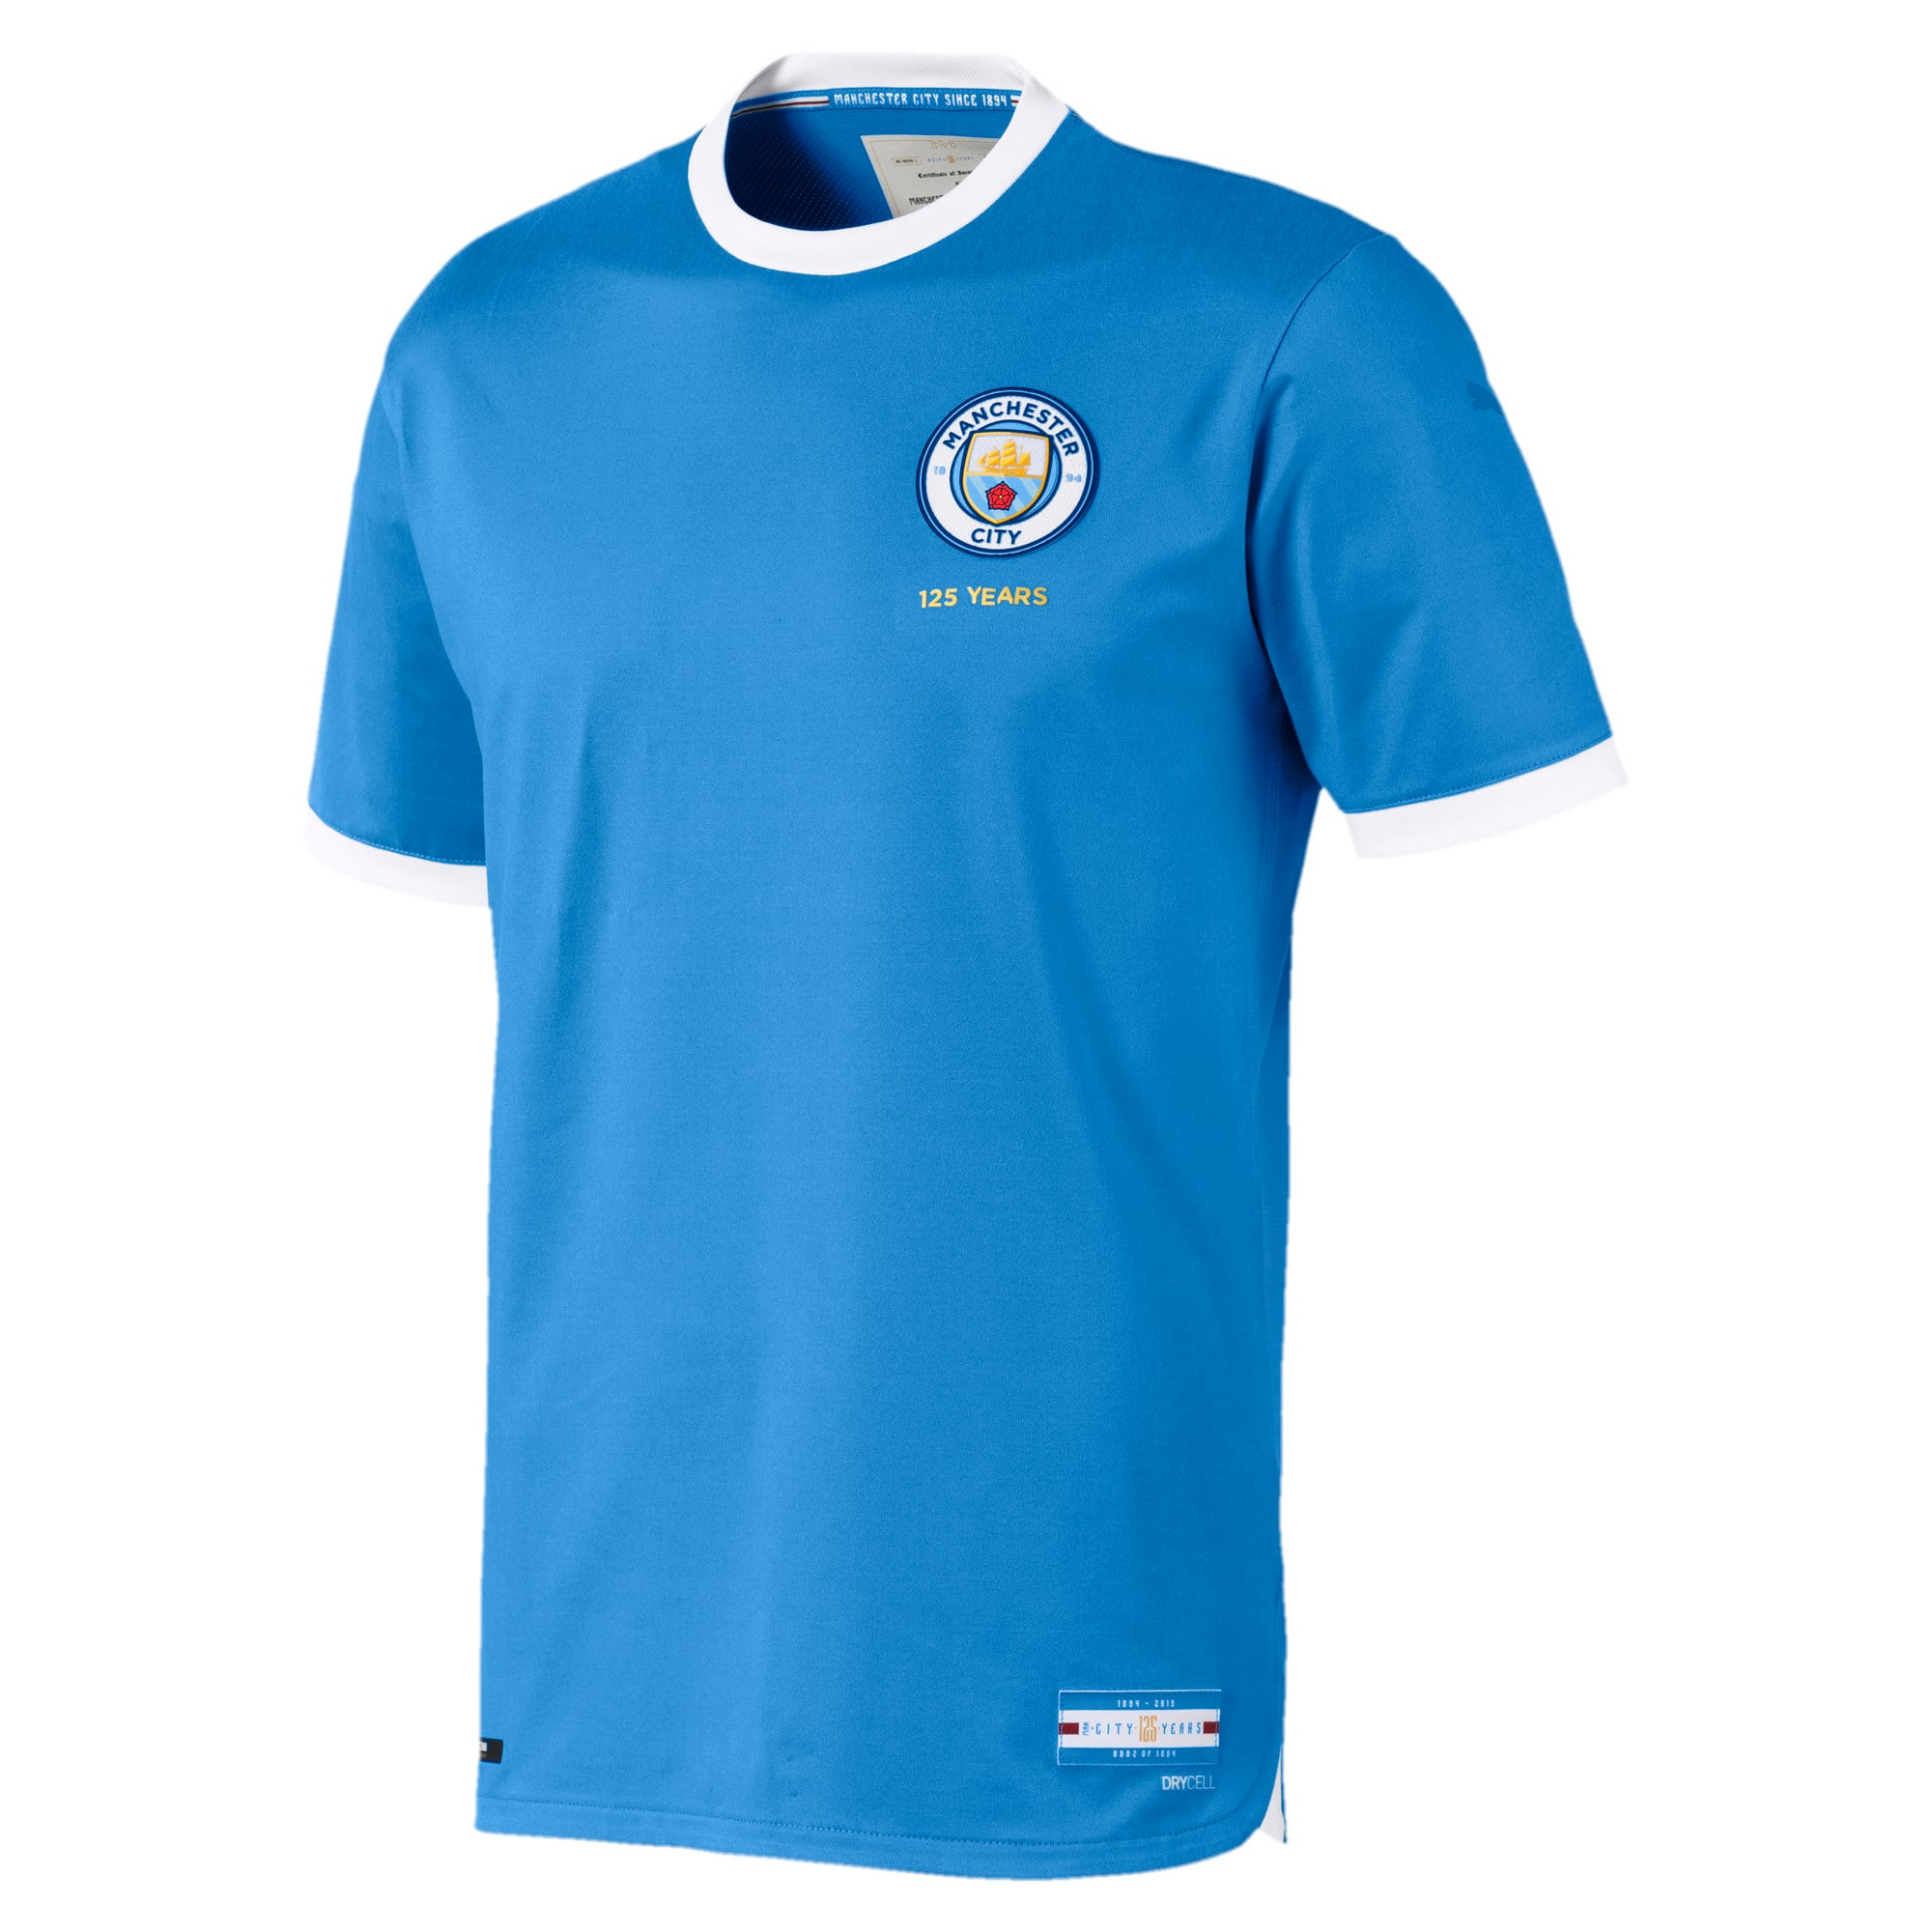 Thumbnail 1 of Maillot Manchester City 125 Year Anniversary Authentic pour homme, Marina-Puma White, medium